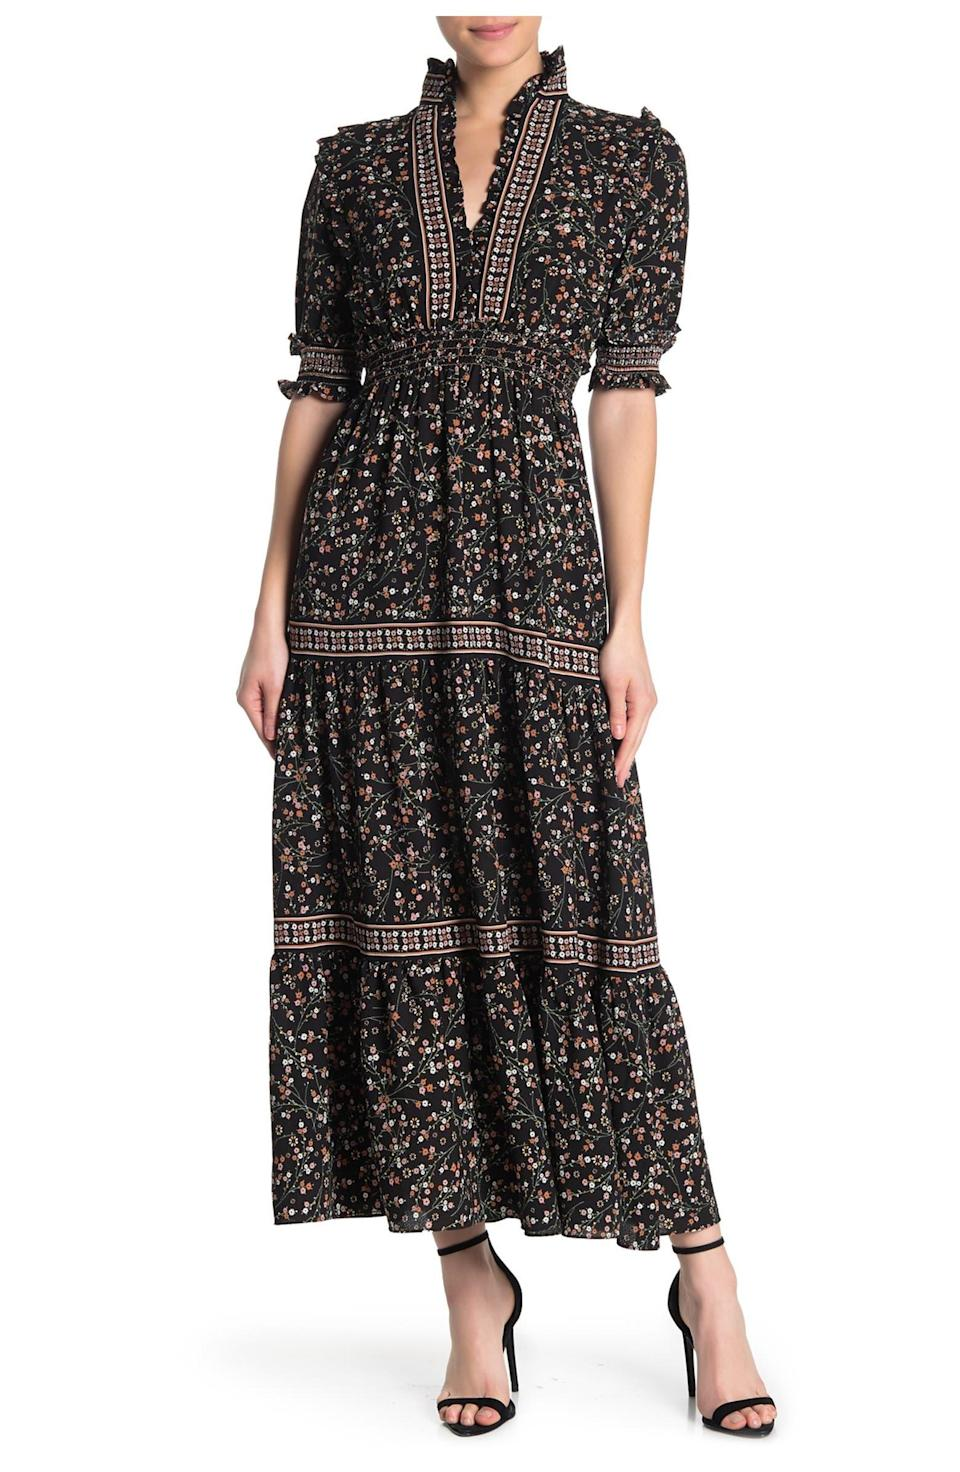 """<h2>Max Studio Print Tiered Maxi Dress<br></h2><br><strong><em>The Compliment Magnet</em></strong><br><br>According to a number of reviewers (mind you, there are over 200 of them in total), this dress is exactly what you need of you want to turn heads this autumn. One happy shopper even attests to it being prettier than its photo.<br><br><strong>The Hype: </strong>4 out of 5 stars; 240 reviews on Nordstromrack.com<br><br><strong>What They're Saying</strong>: """"Prettier in person! It's a great all seasons piece, I plan on wearing it with boots and a sweater now and sandals later on.""""— Meg S, Nordstrom Rack reviewer<br><br><em>Shop <strong><a href=""""https://www.nordstromrack.com/s/max-studio-elbow-length-sleeve-print-tiered-maxi-dress/6043768"""" rel=""""sponsored"""" target=""""_blank"""" data-ylk=""""slk:Nordstrom Rack"""" class=""""link rapid-noclick-resp"""">Nordstrom Rack</a></strong></em><br><br><strong>Max Studio</strong> Elbow Length Sleeve Print Tiered Maxi Dress, $, available at <a href=""""https://go.skimresources.com/?id=30283X879131&url=https%3A%2F%2Fwww.nordstromrack.com%2Fs%2Fmax-studio-elbow-length-sleeve-print-tiered-maxi-dress%2F6043768"""" rel=""""sponsored"""" target=""""_blank"""" data-ylk=""""slk:Nordstrom Rack"""" class=""""link rapid-noclick-resp"""">Nordstrom Rack</a>"""